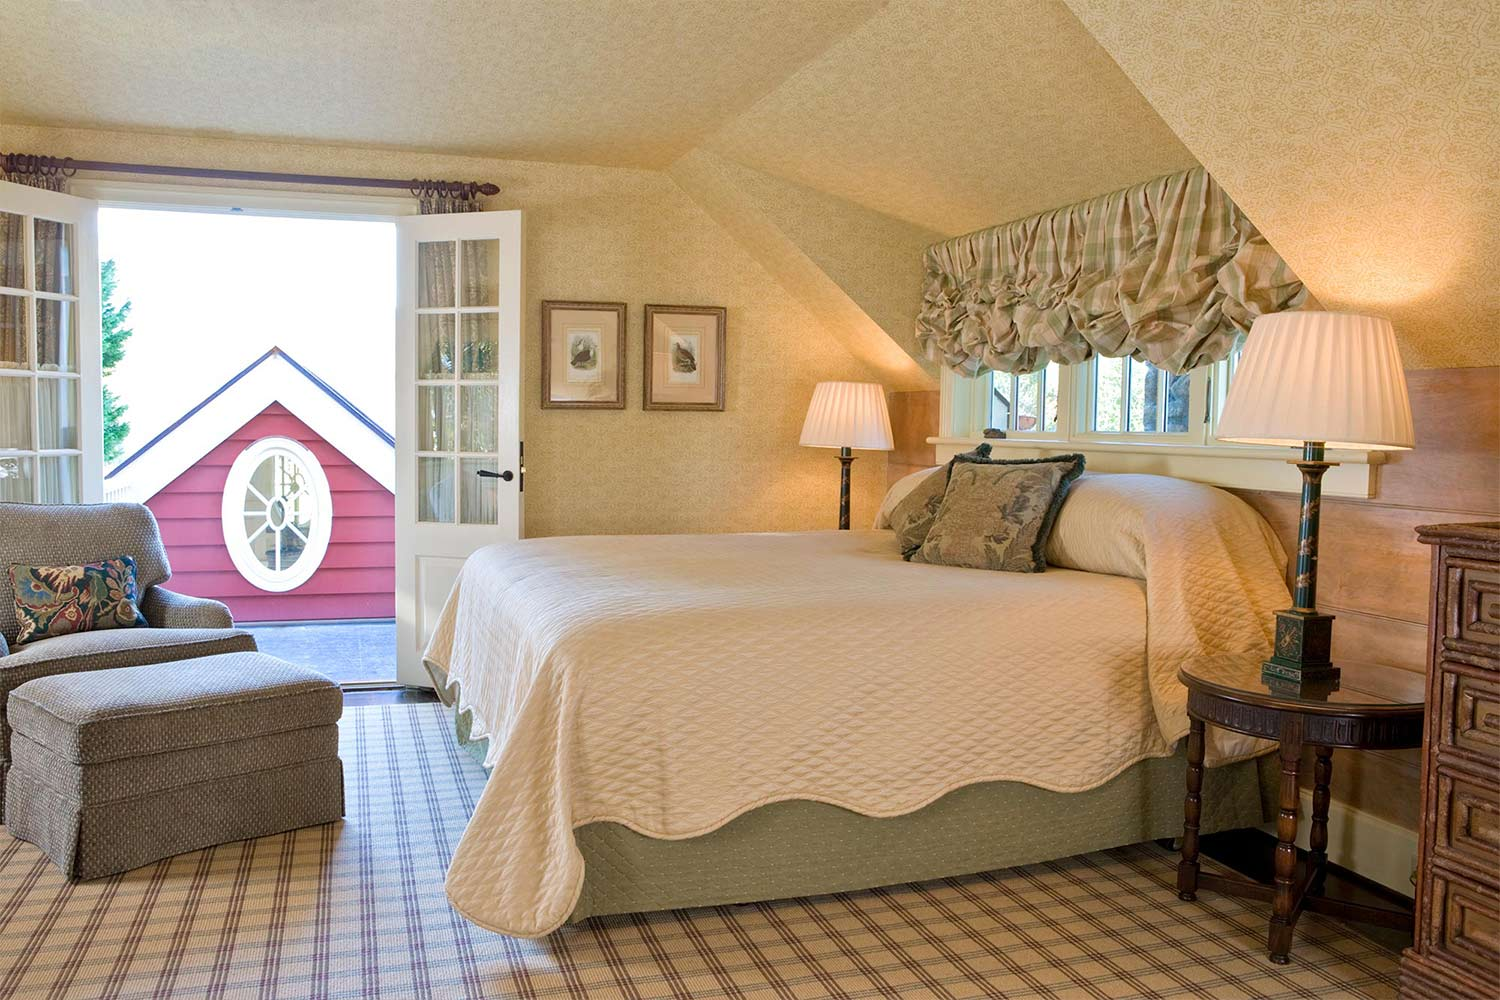 A second floor master bedroom with an open window and inviting bed,